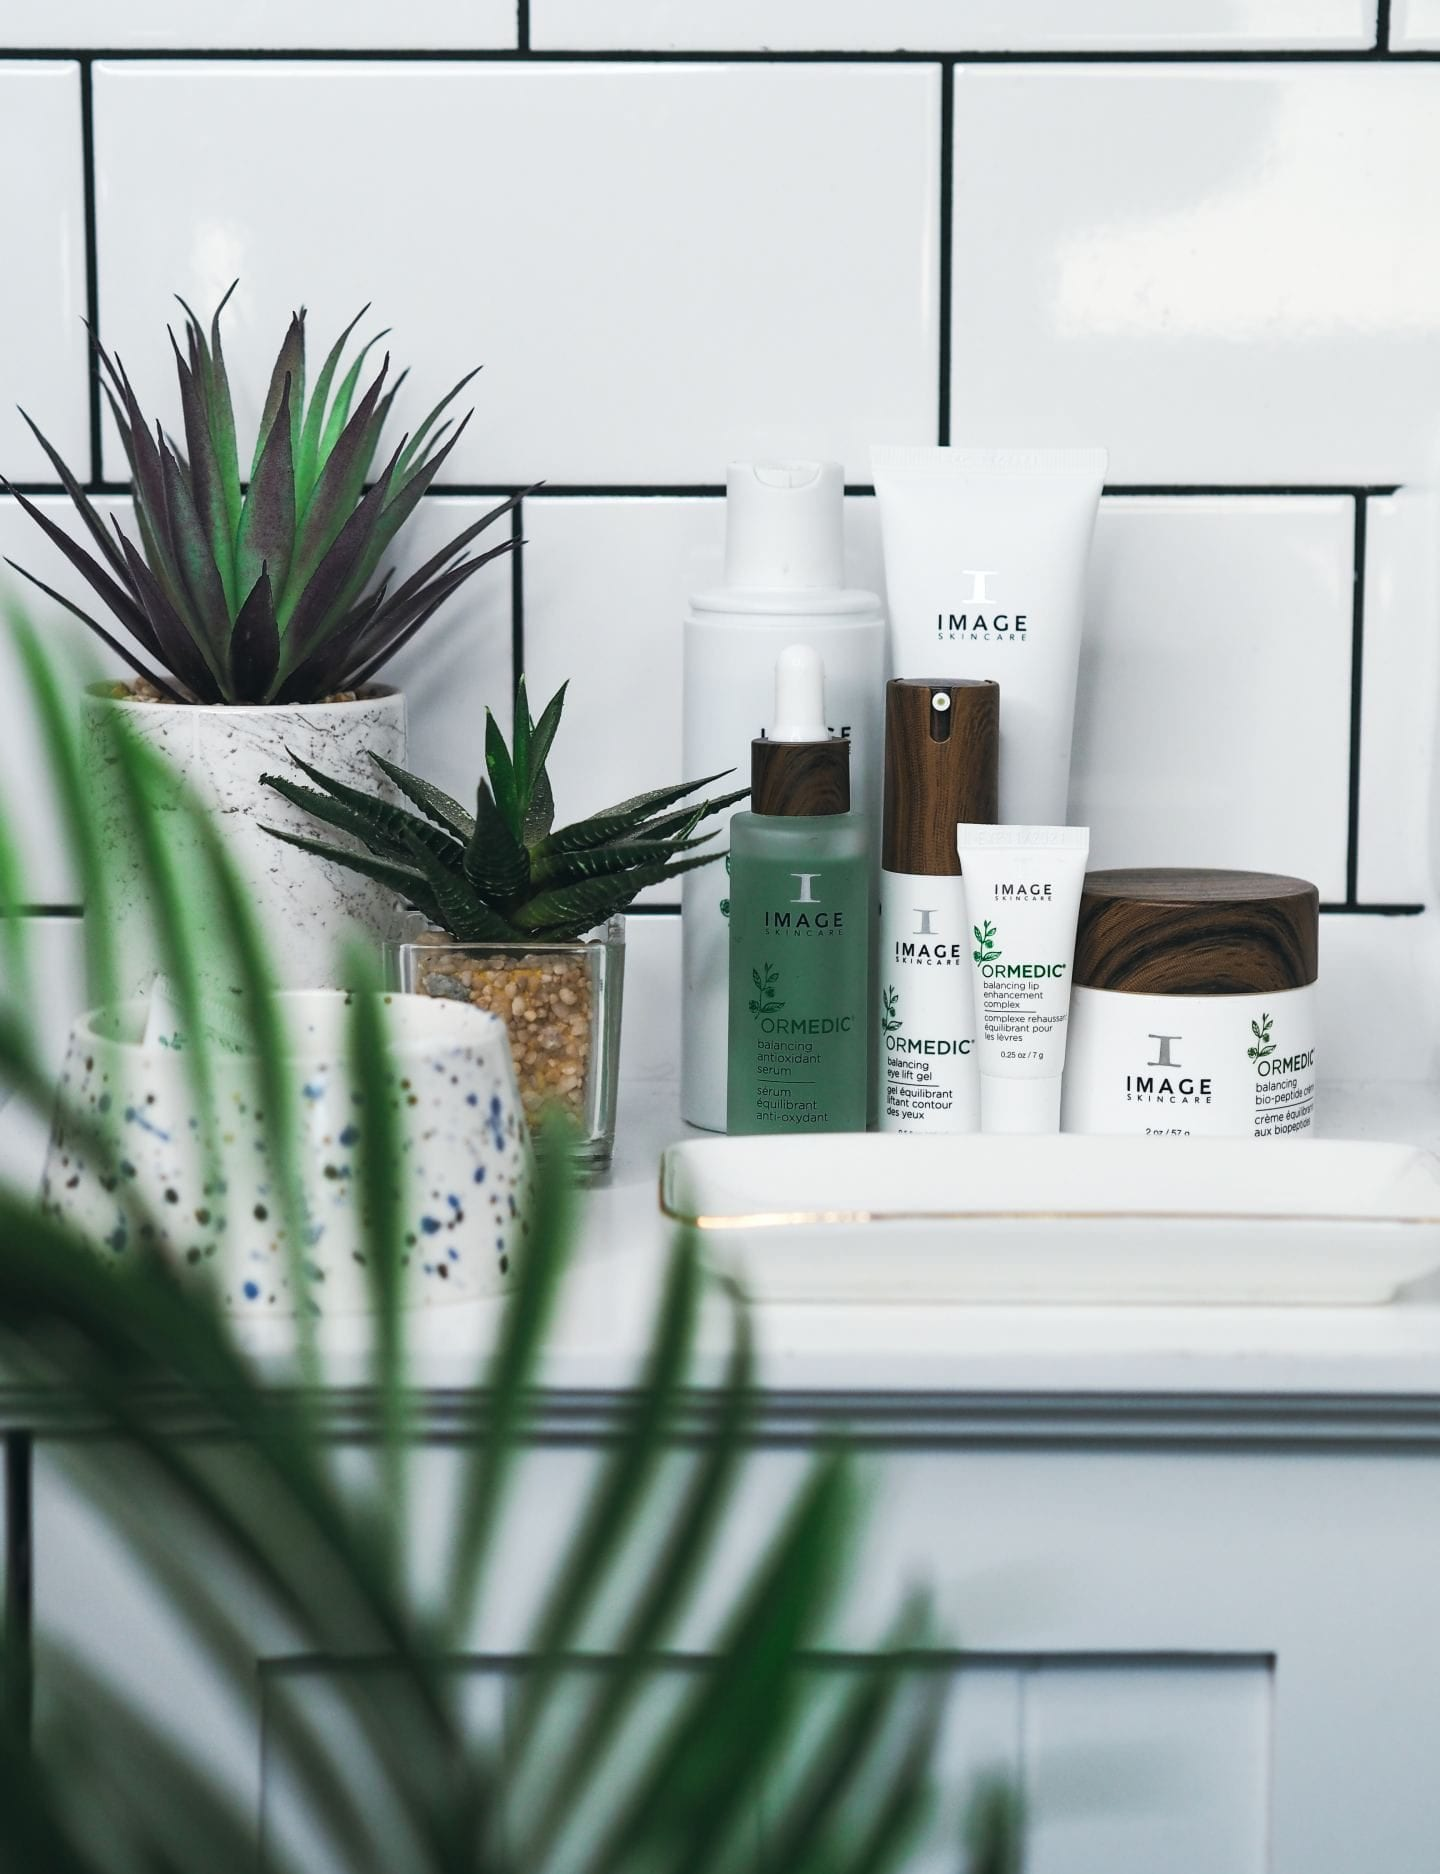 image skincare review ormedic collection bathroom cacti